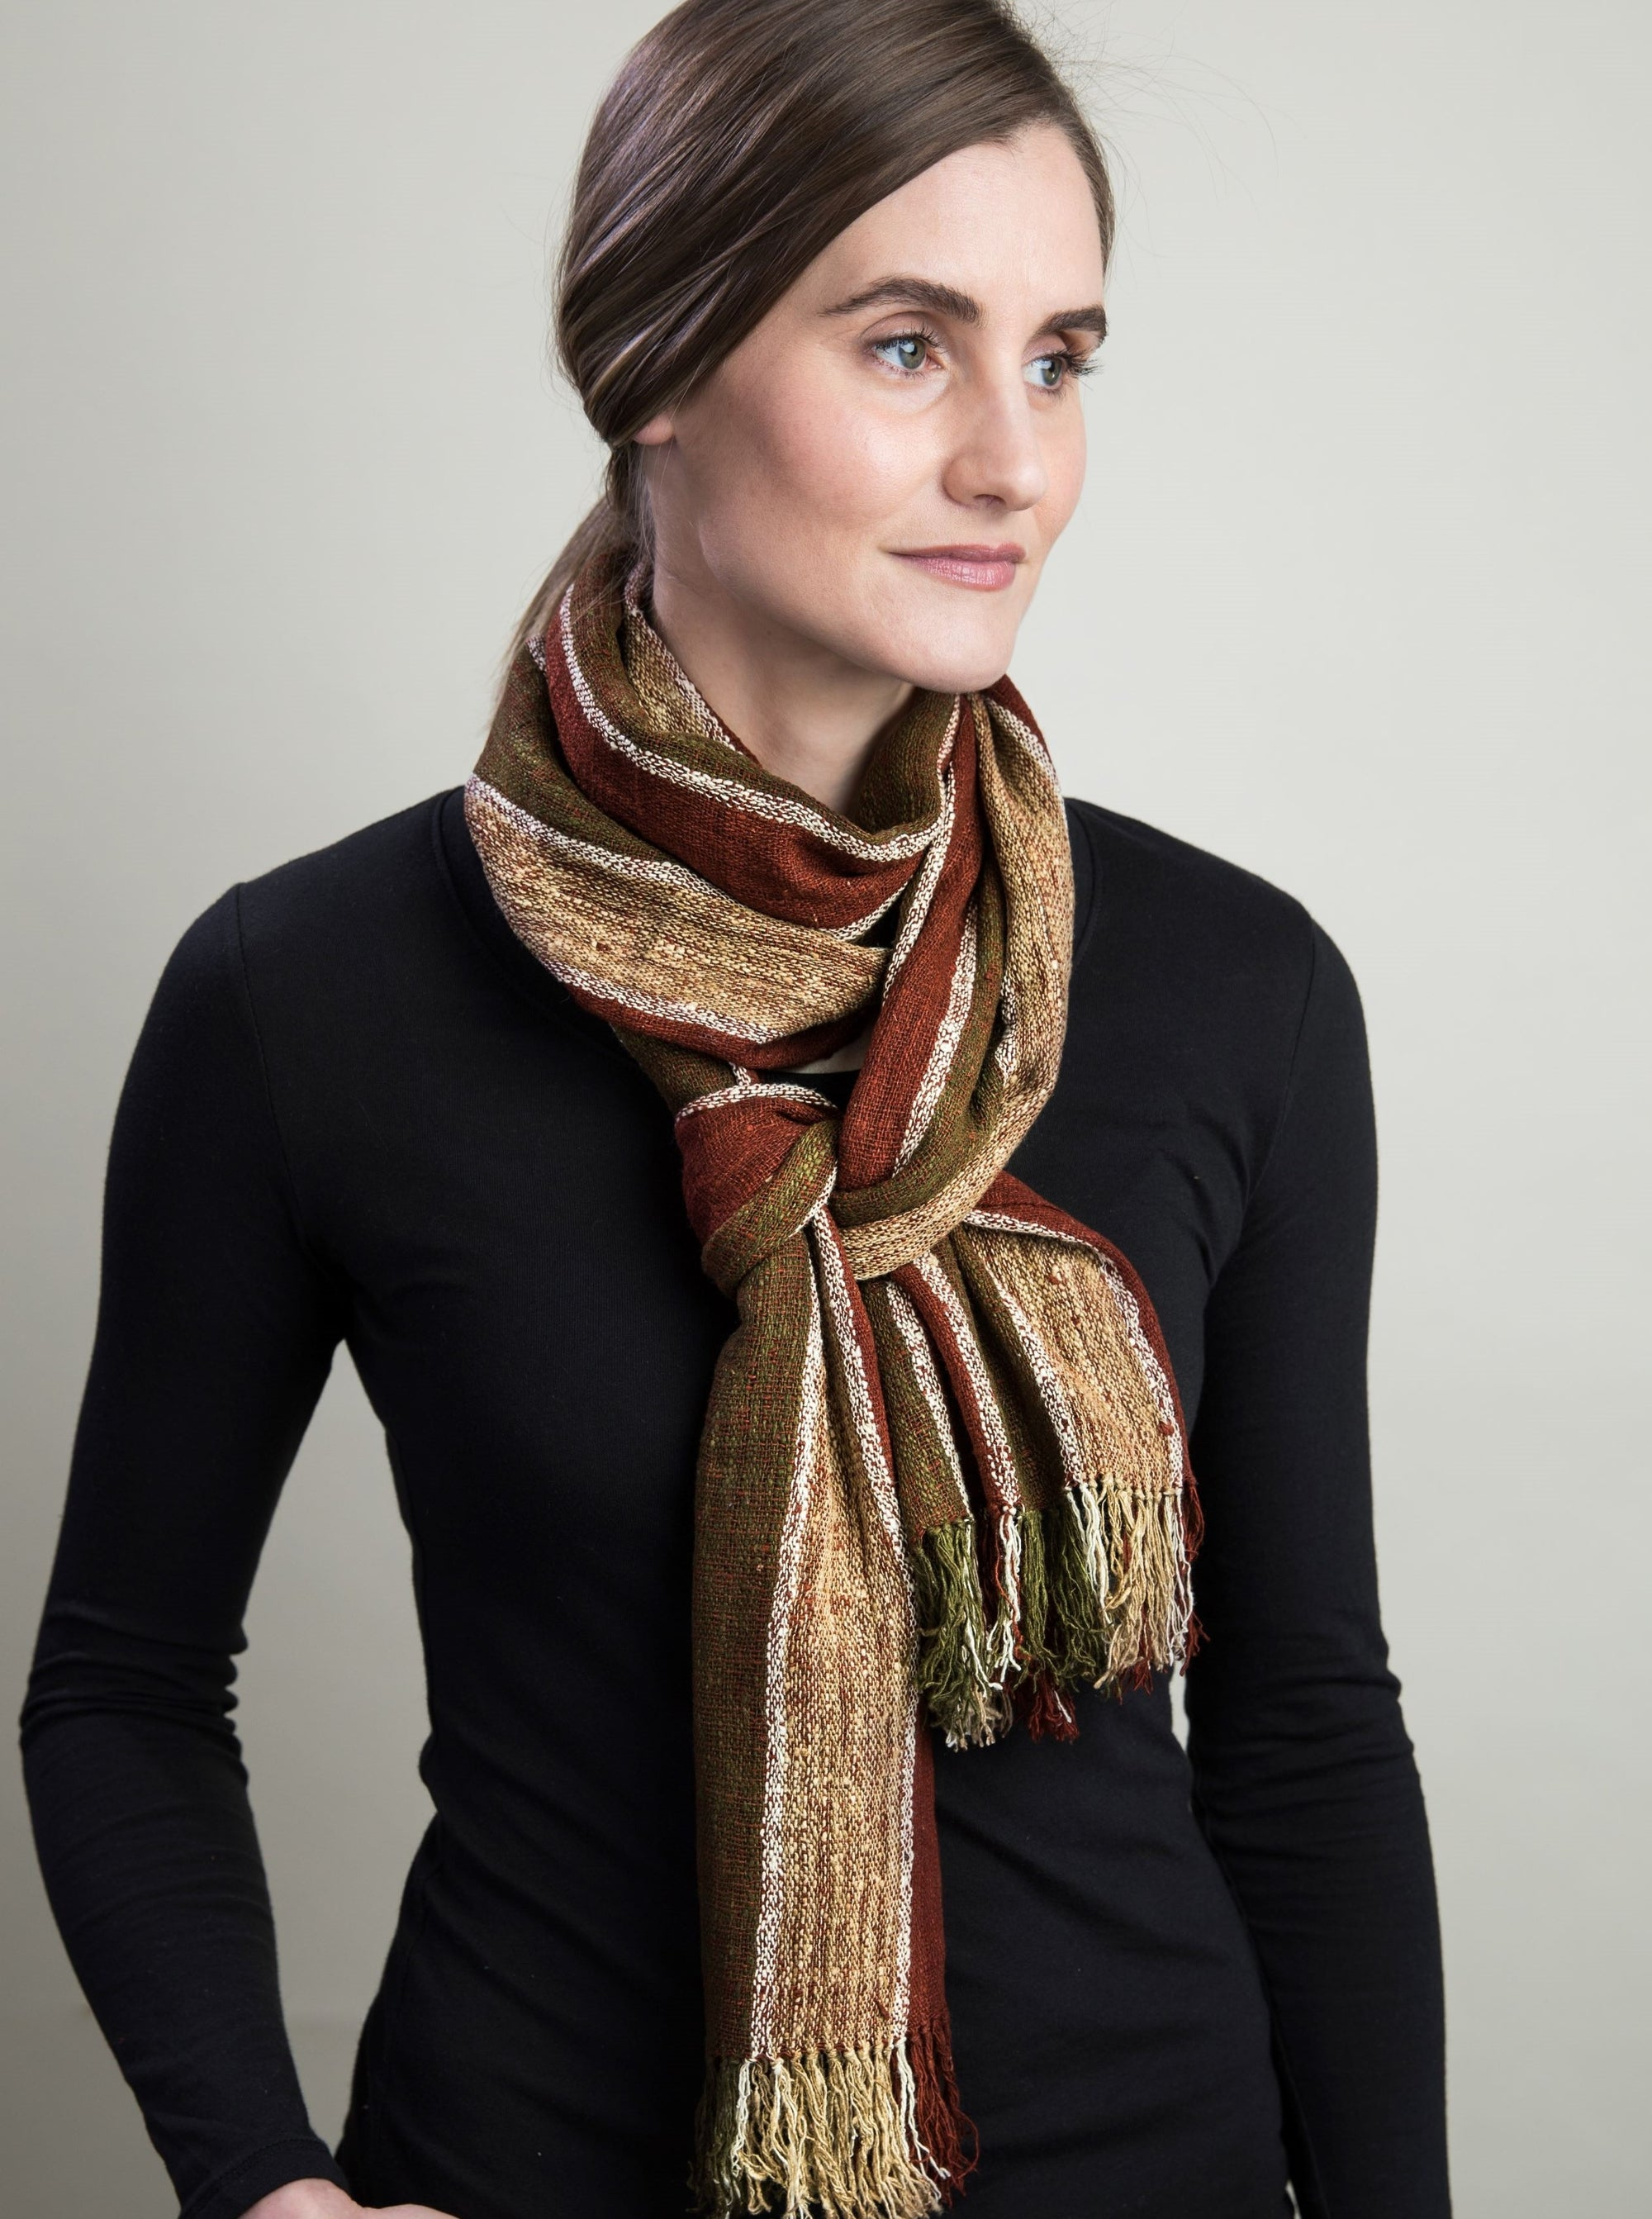 Naturally Dyed Fair Trade Scarf for Women and Men